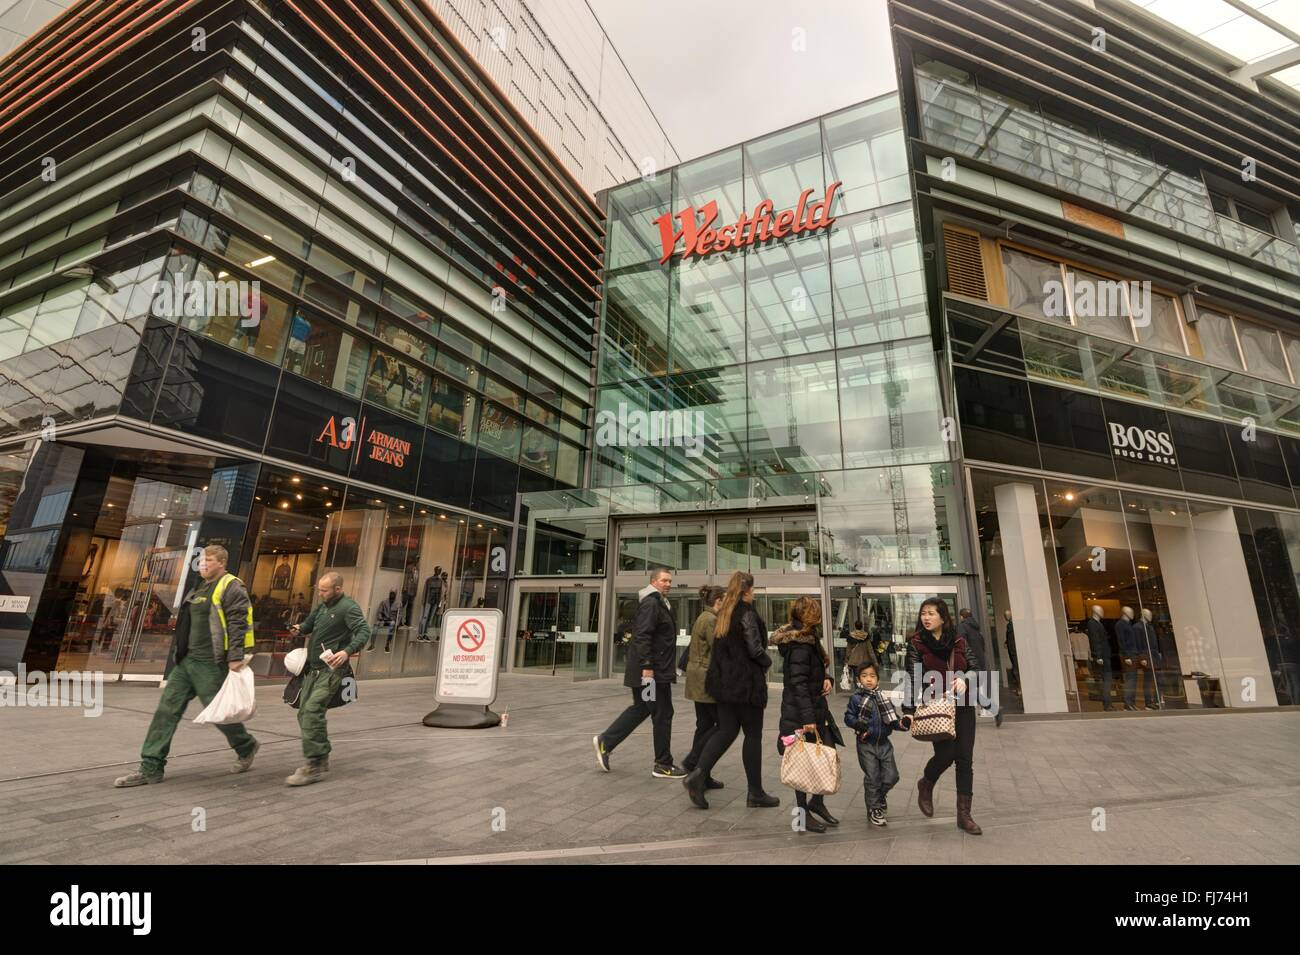 Westfield Shopping Centre, Stratford. Stock Photo